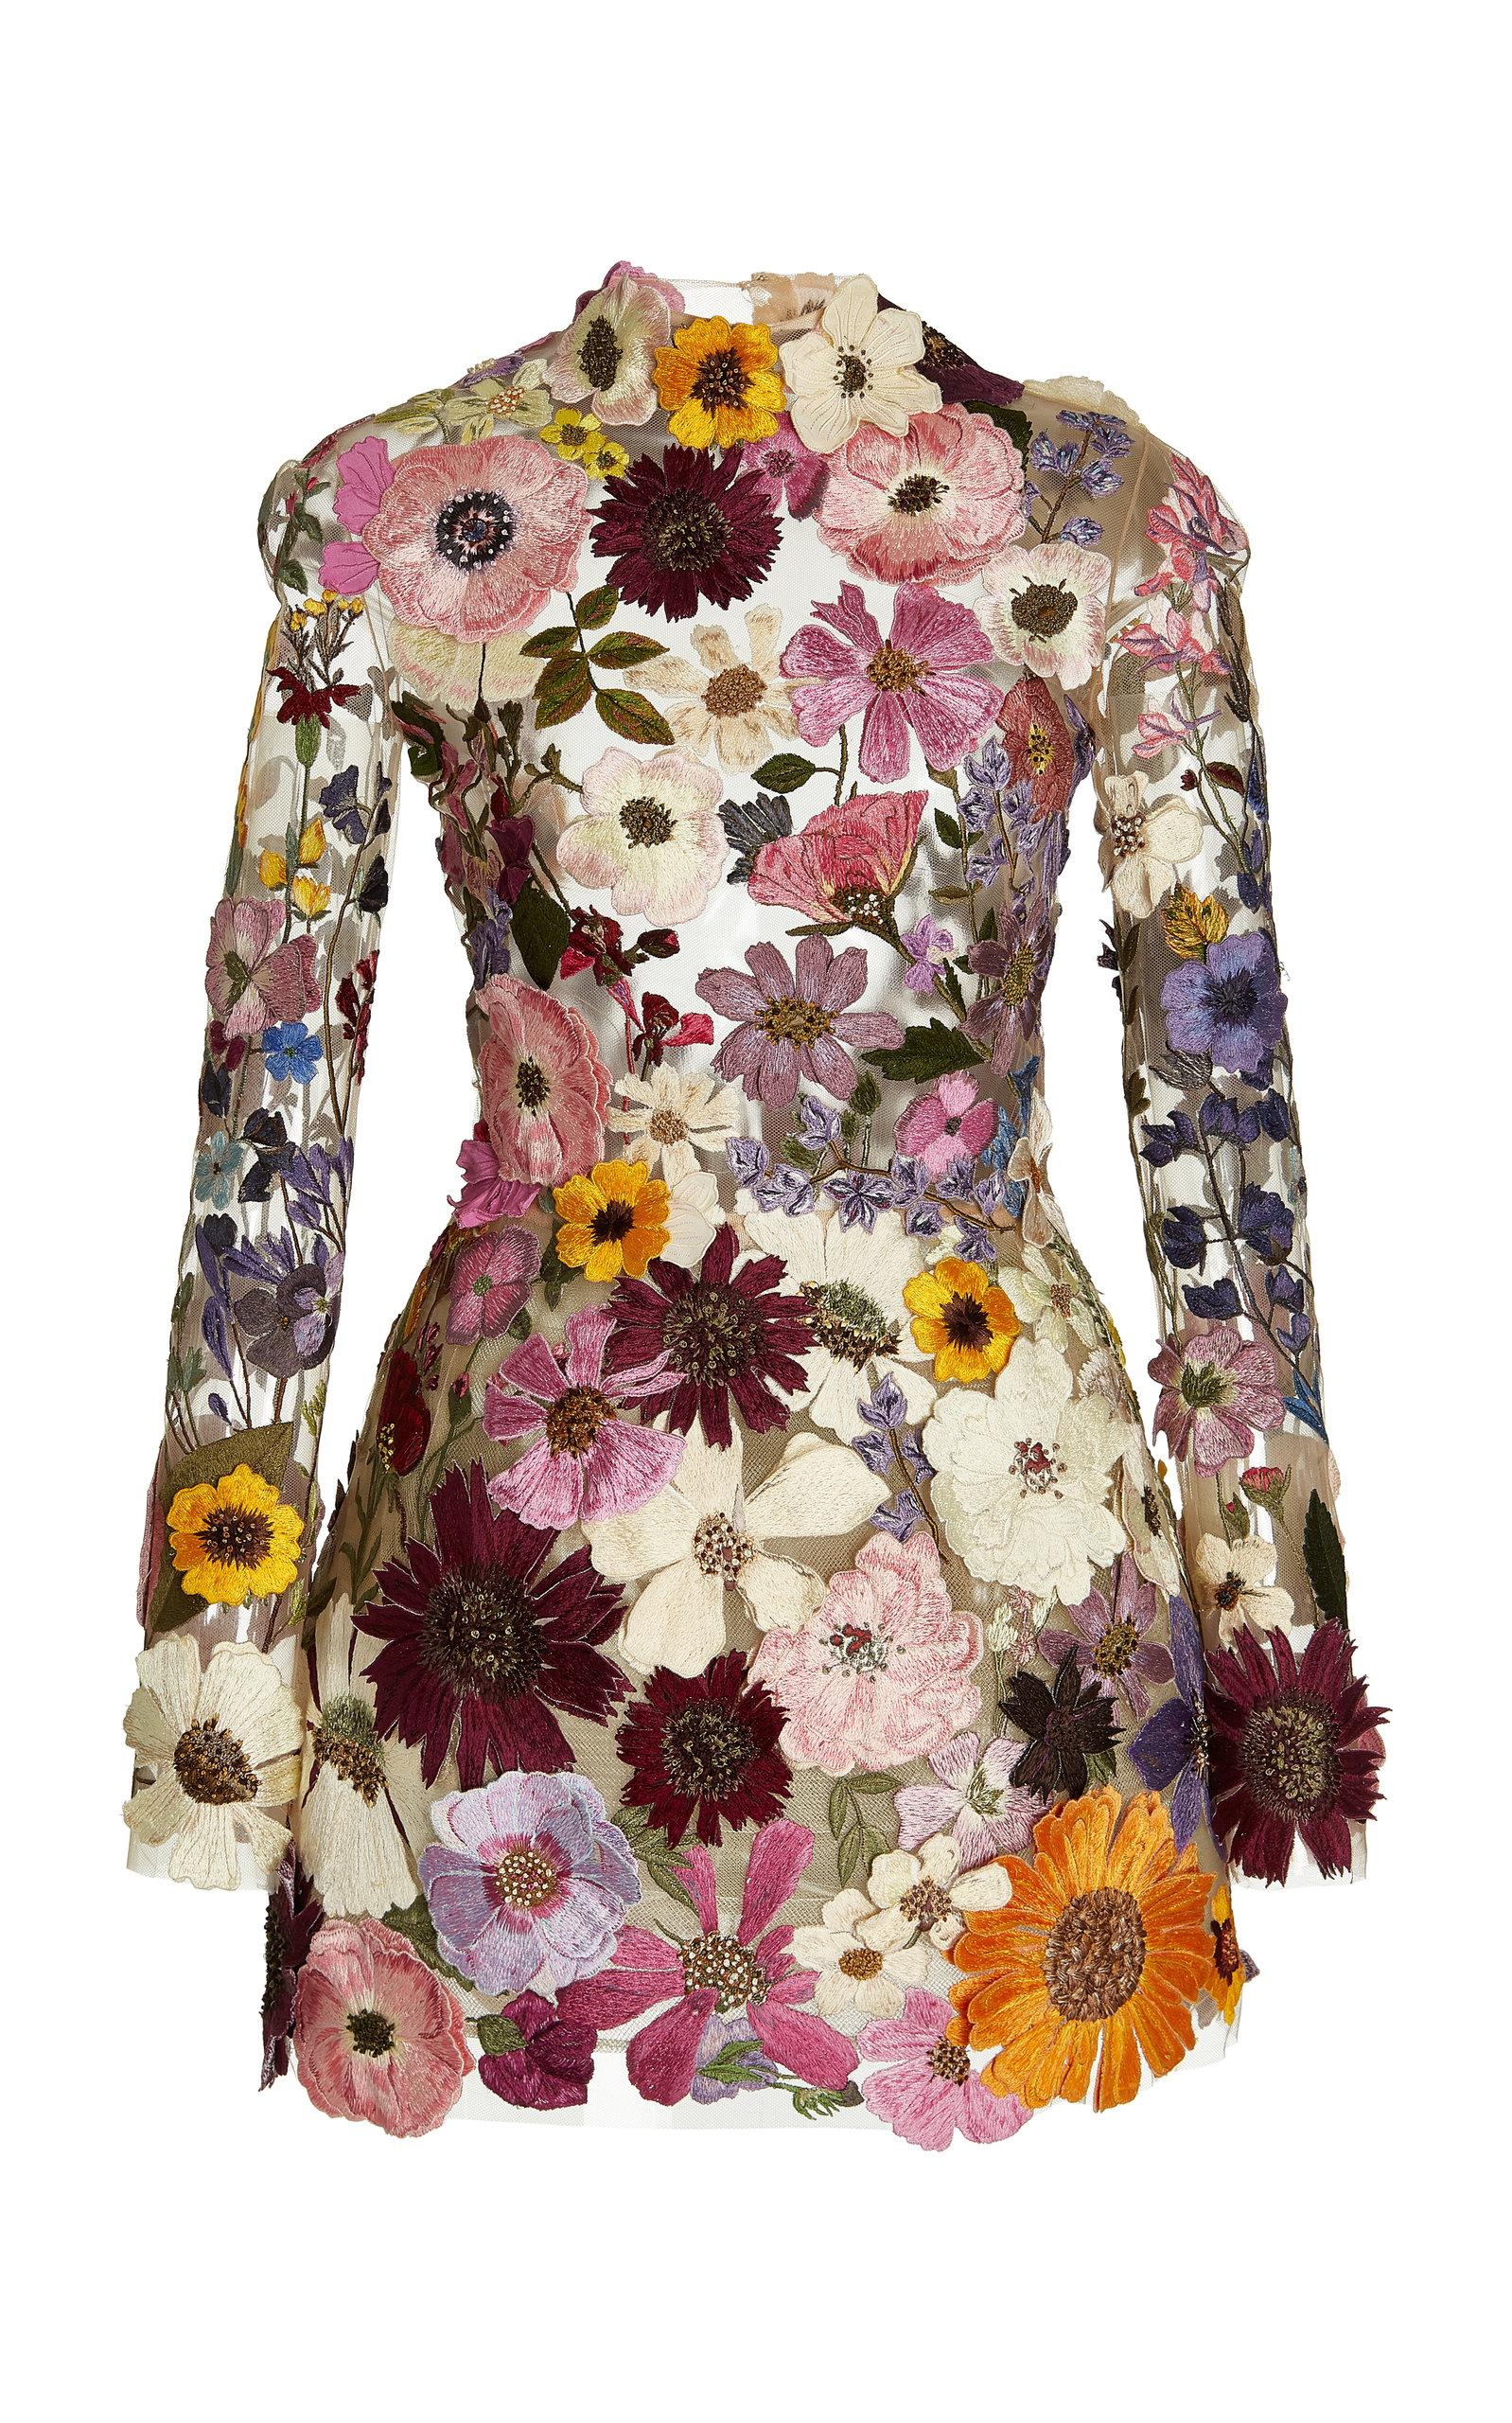 Detailed colorful flower embroidered mini dress for fall 2021 Oscar de la Renta styles.